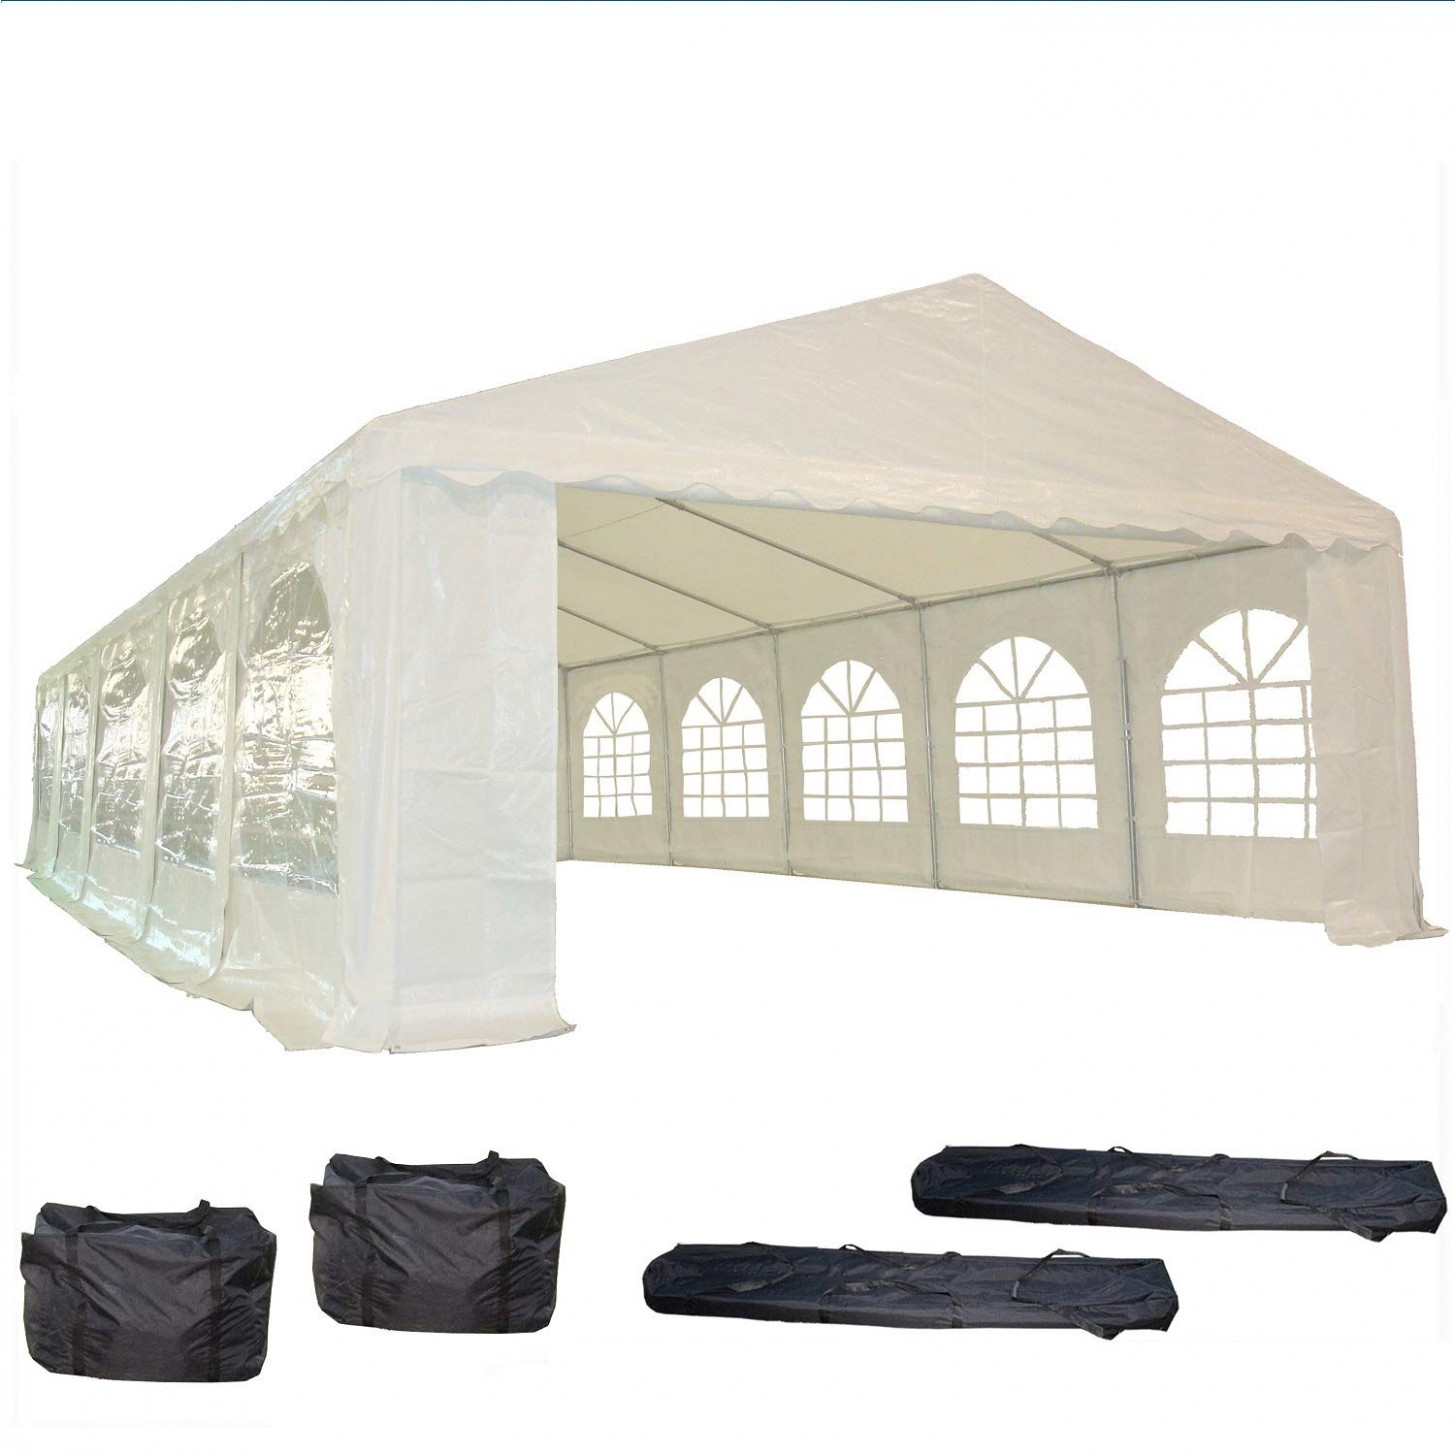 12'x12′ PE Party Tent White Heavy Duty Wedding Canopy Carport Shelter With Storage Bags By DELTA Canopies Carport Tent Party